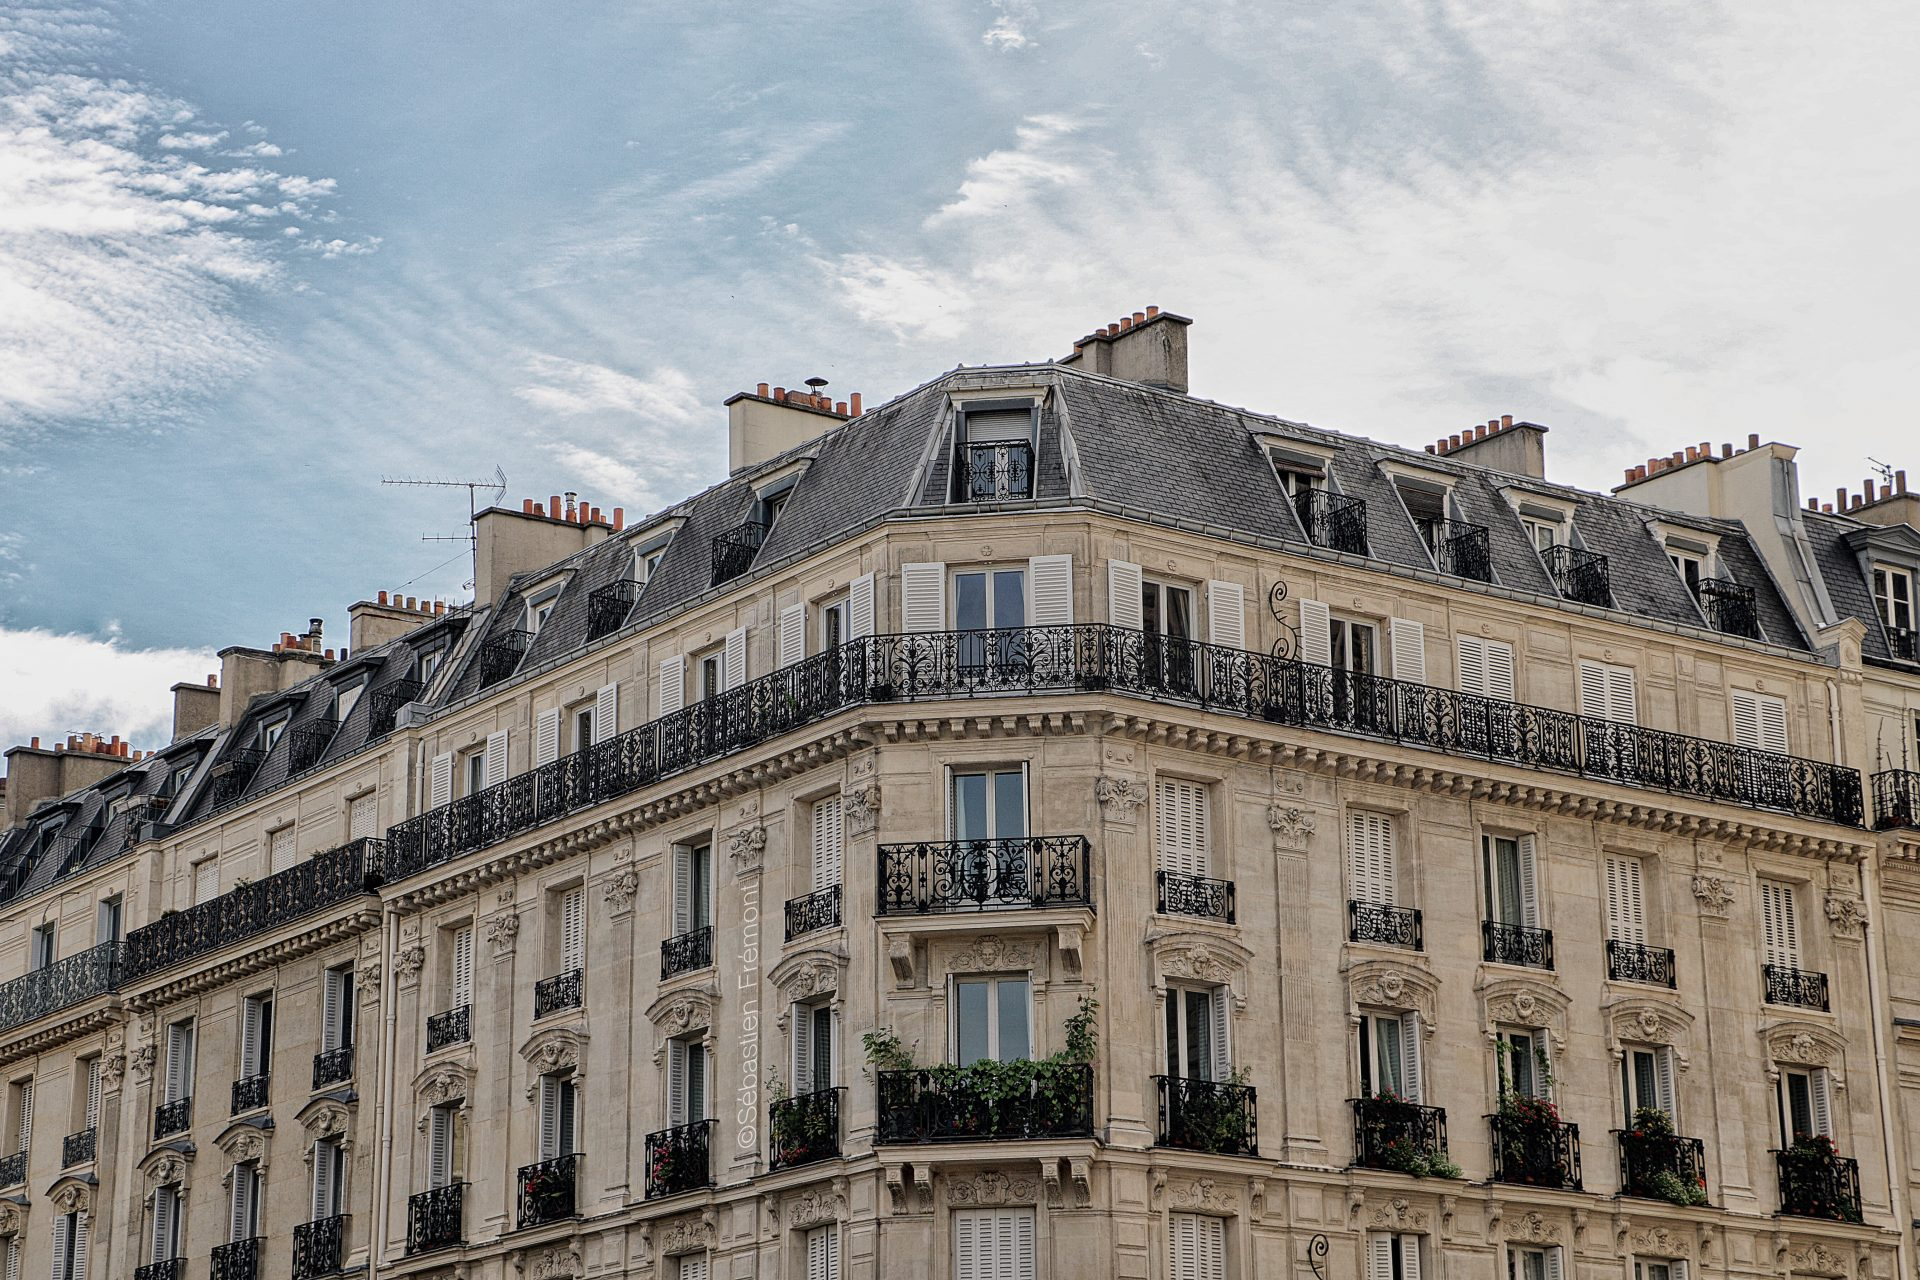 French Photographer Landscape Photography Paris / Haussman Building